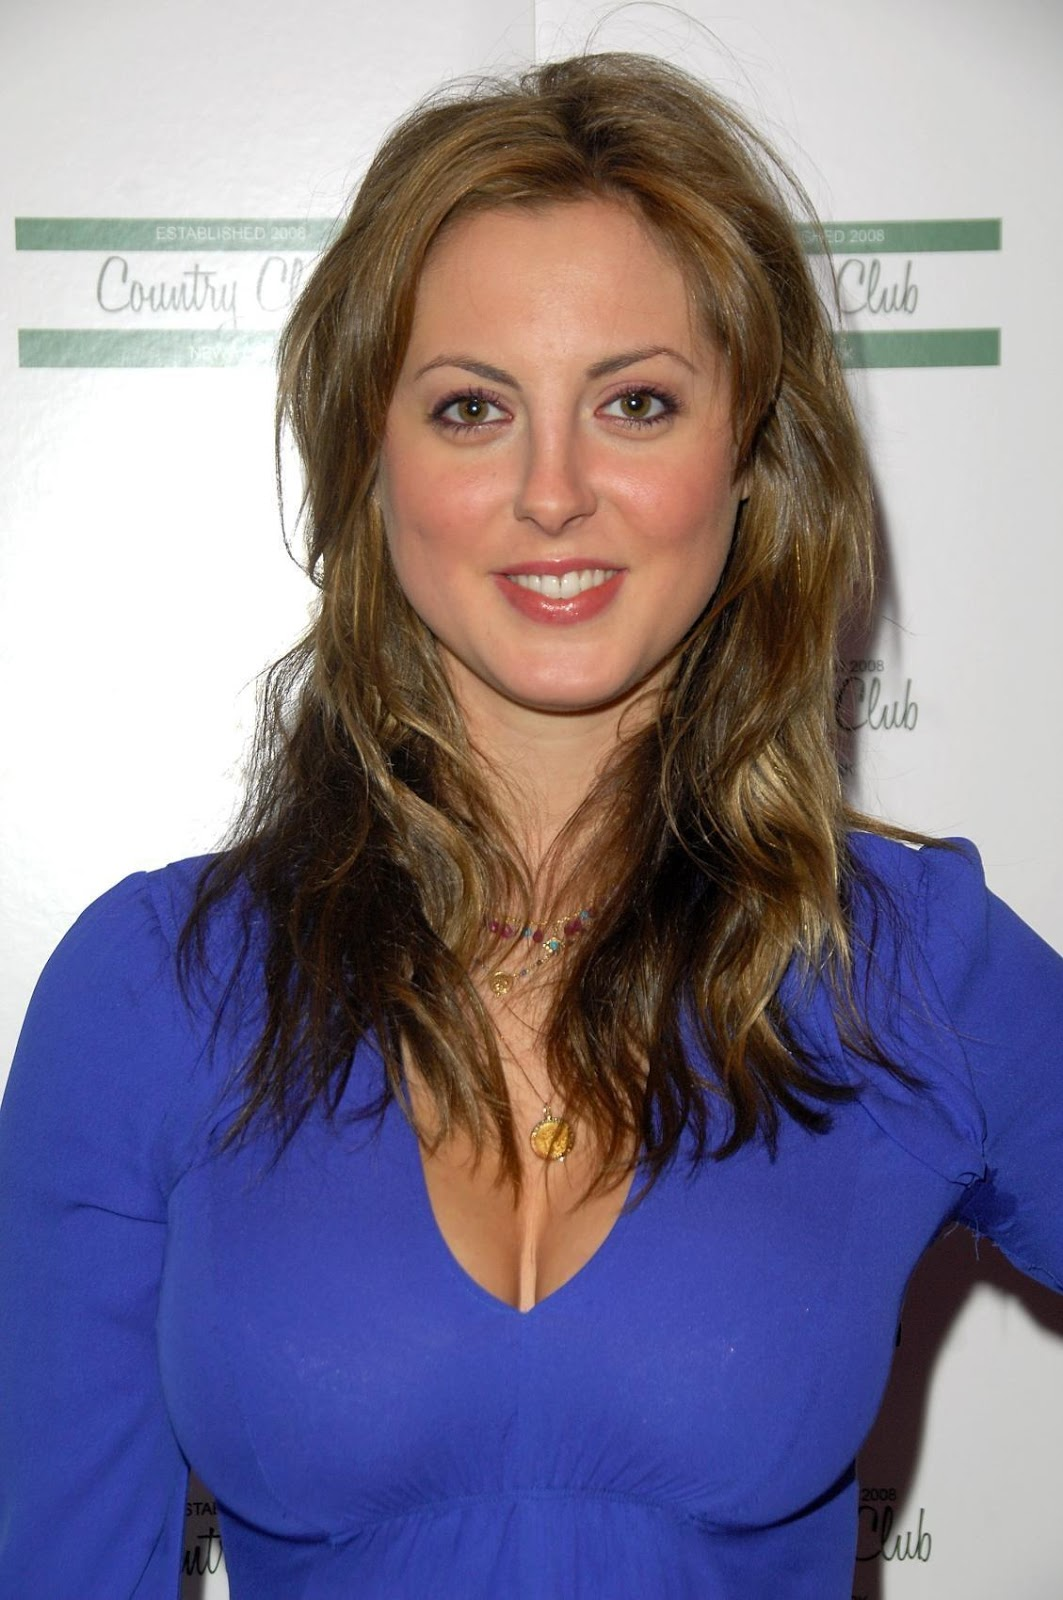 Cleavage Eva Amurri naked (19 photo), Sexy, Leaked, Boobs, braless 2019